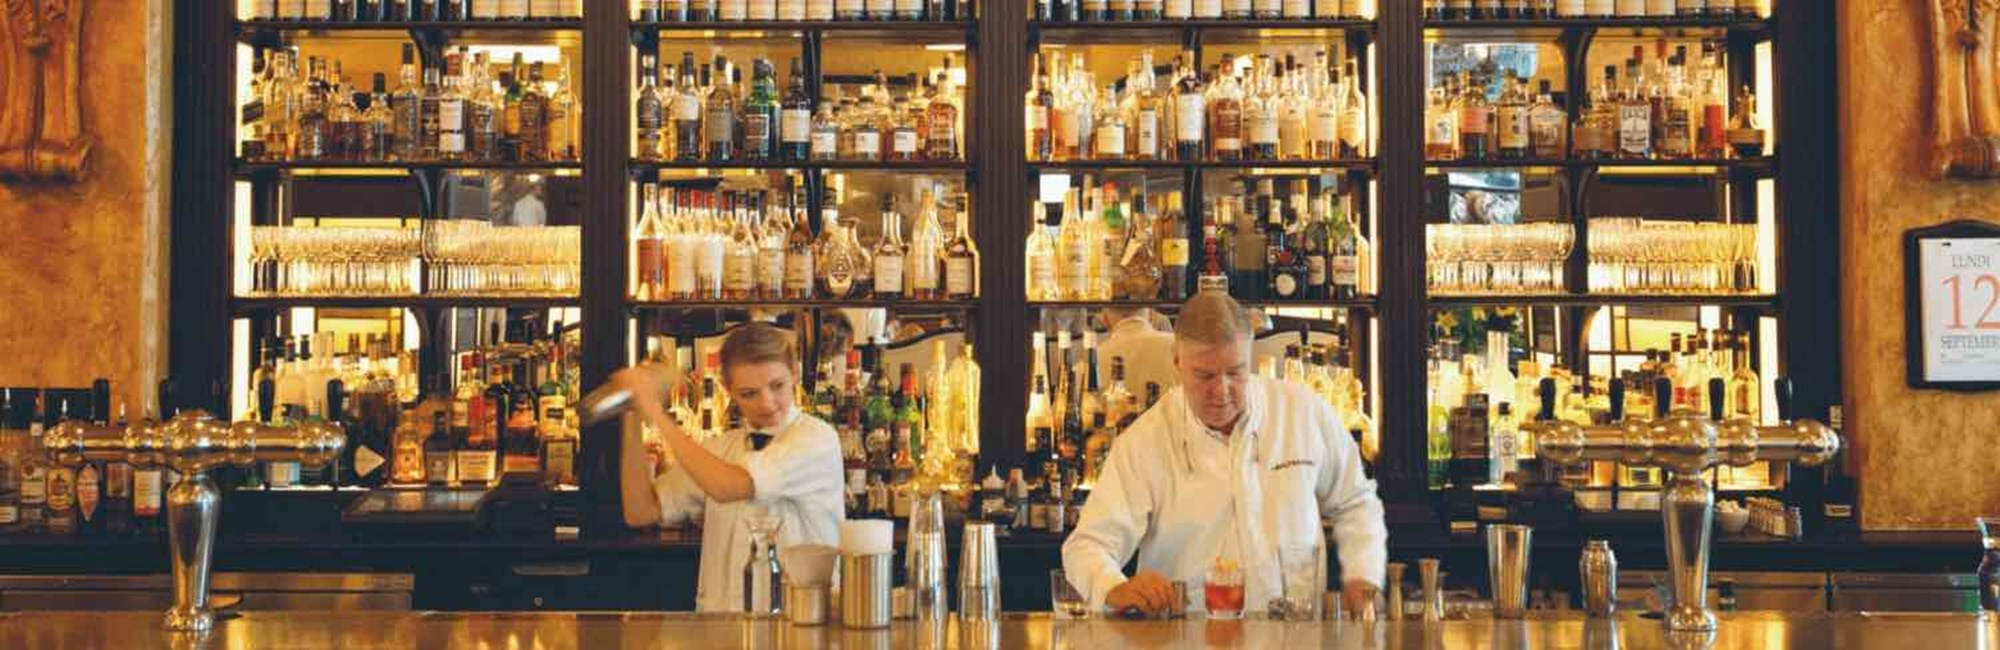 Bartenders shaking and mixing cocktails behind the bar